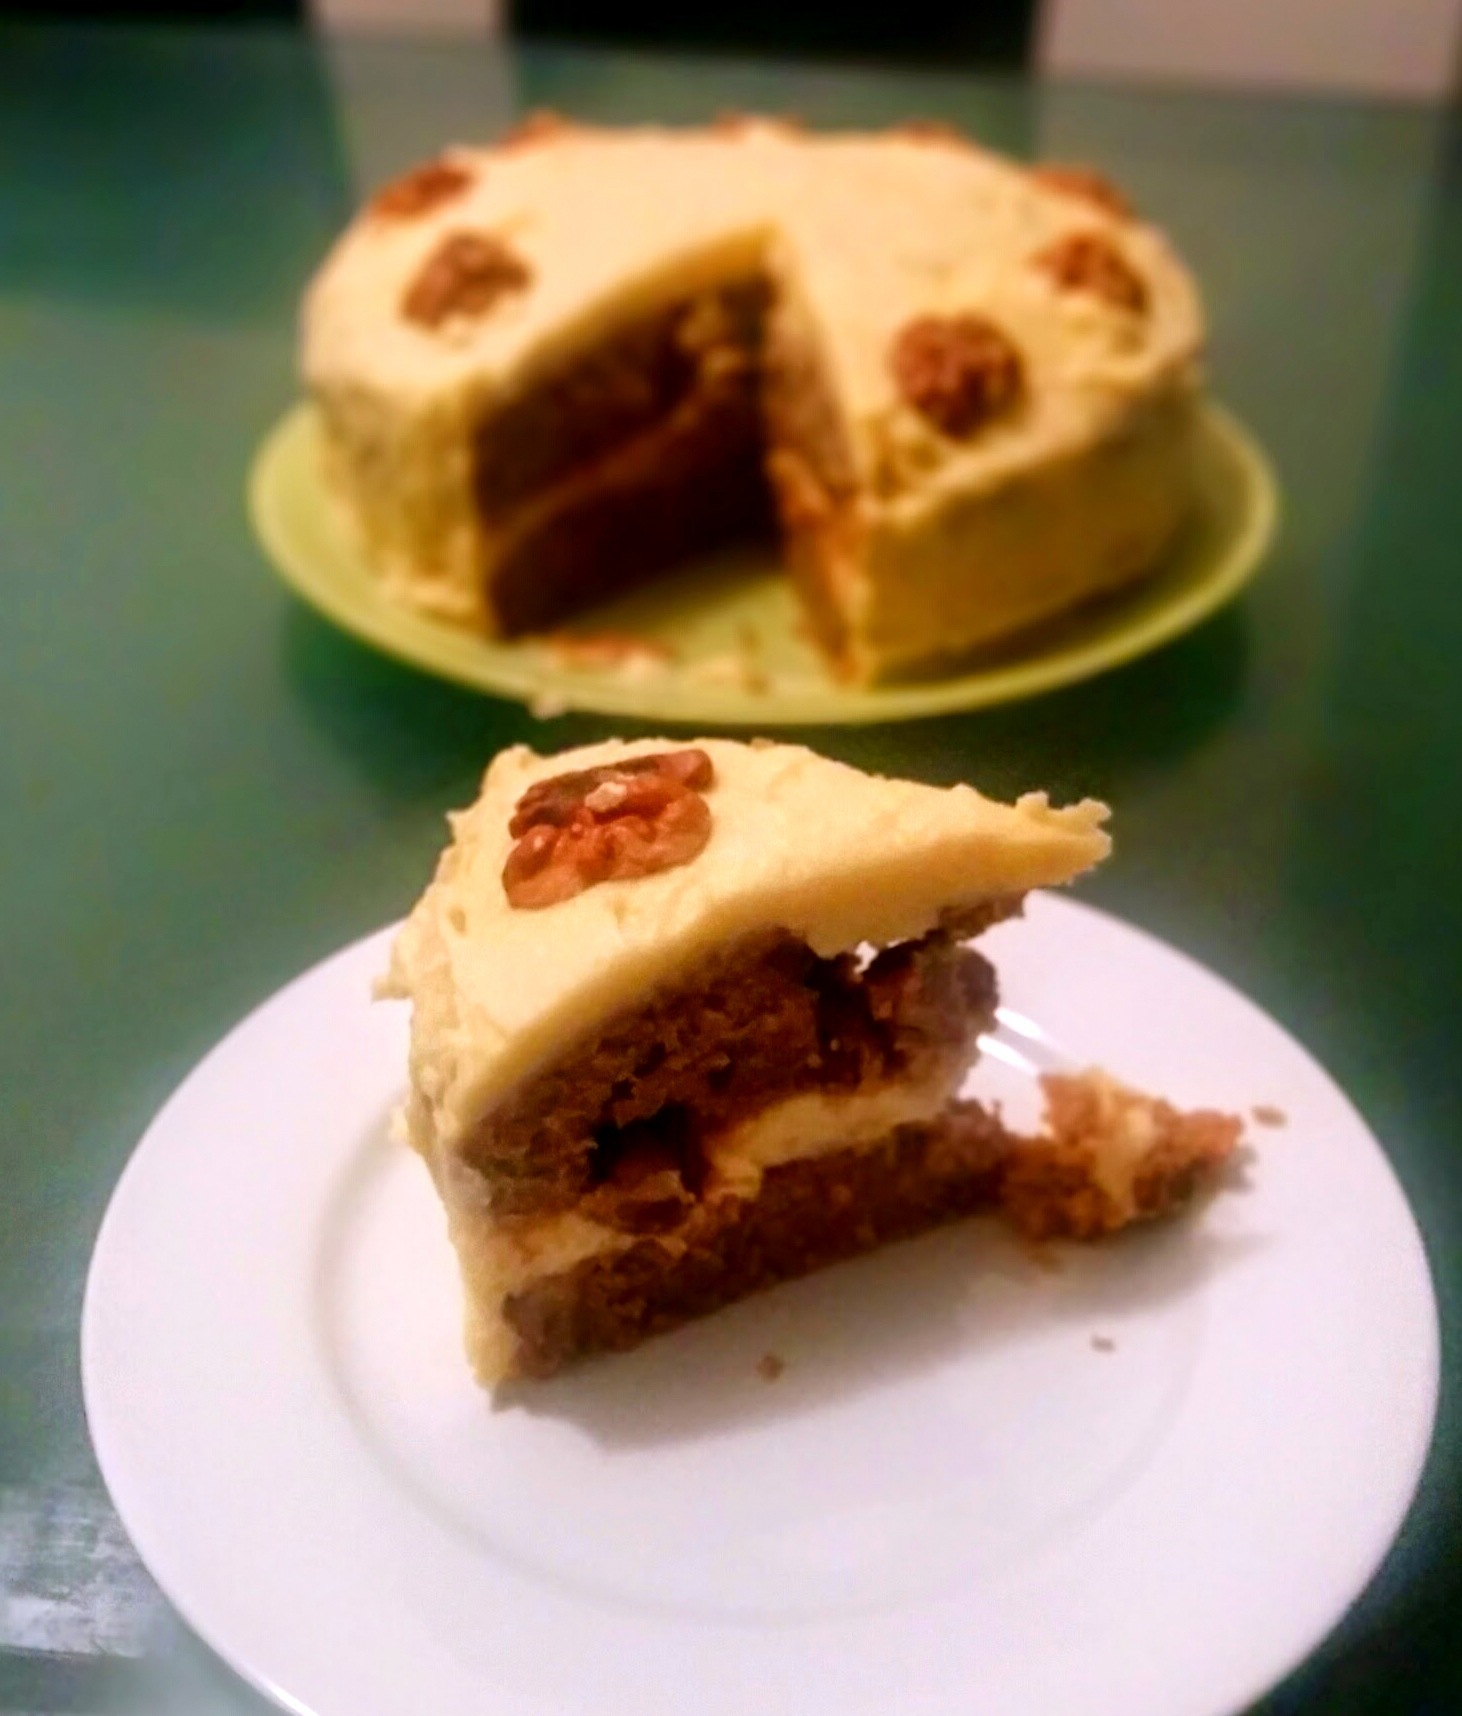 Courgette, Carrot and Walnut Cake